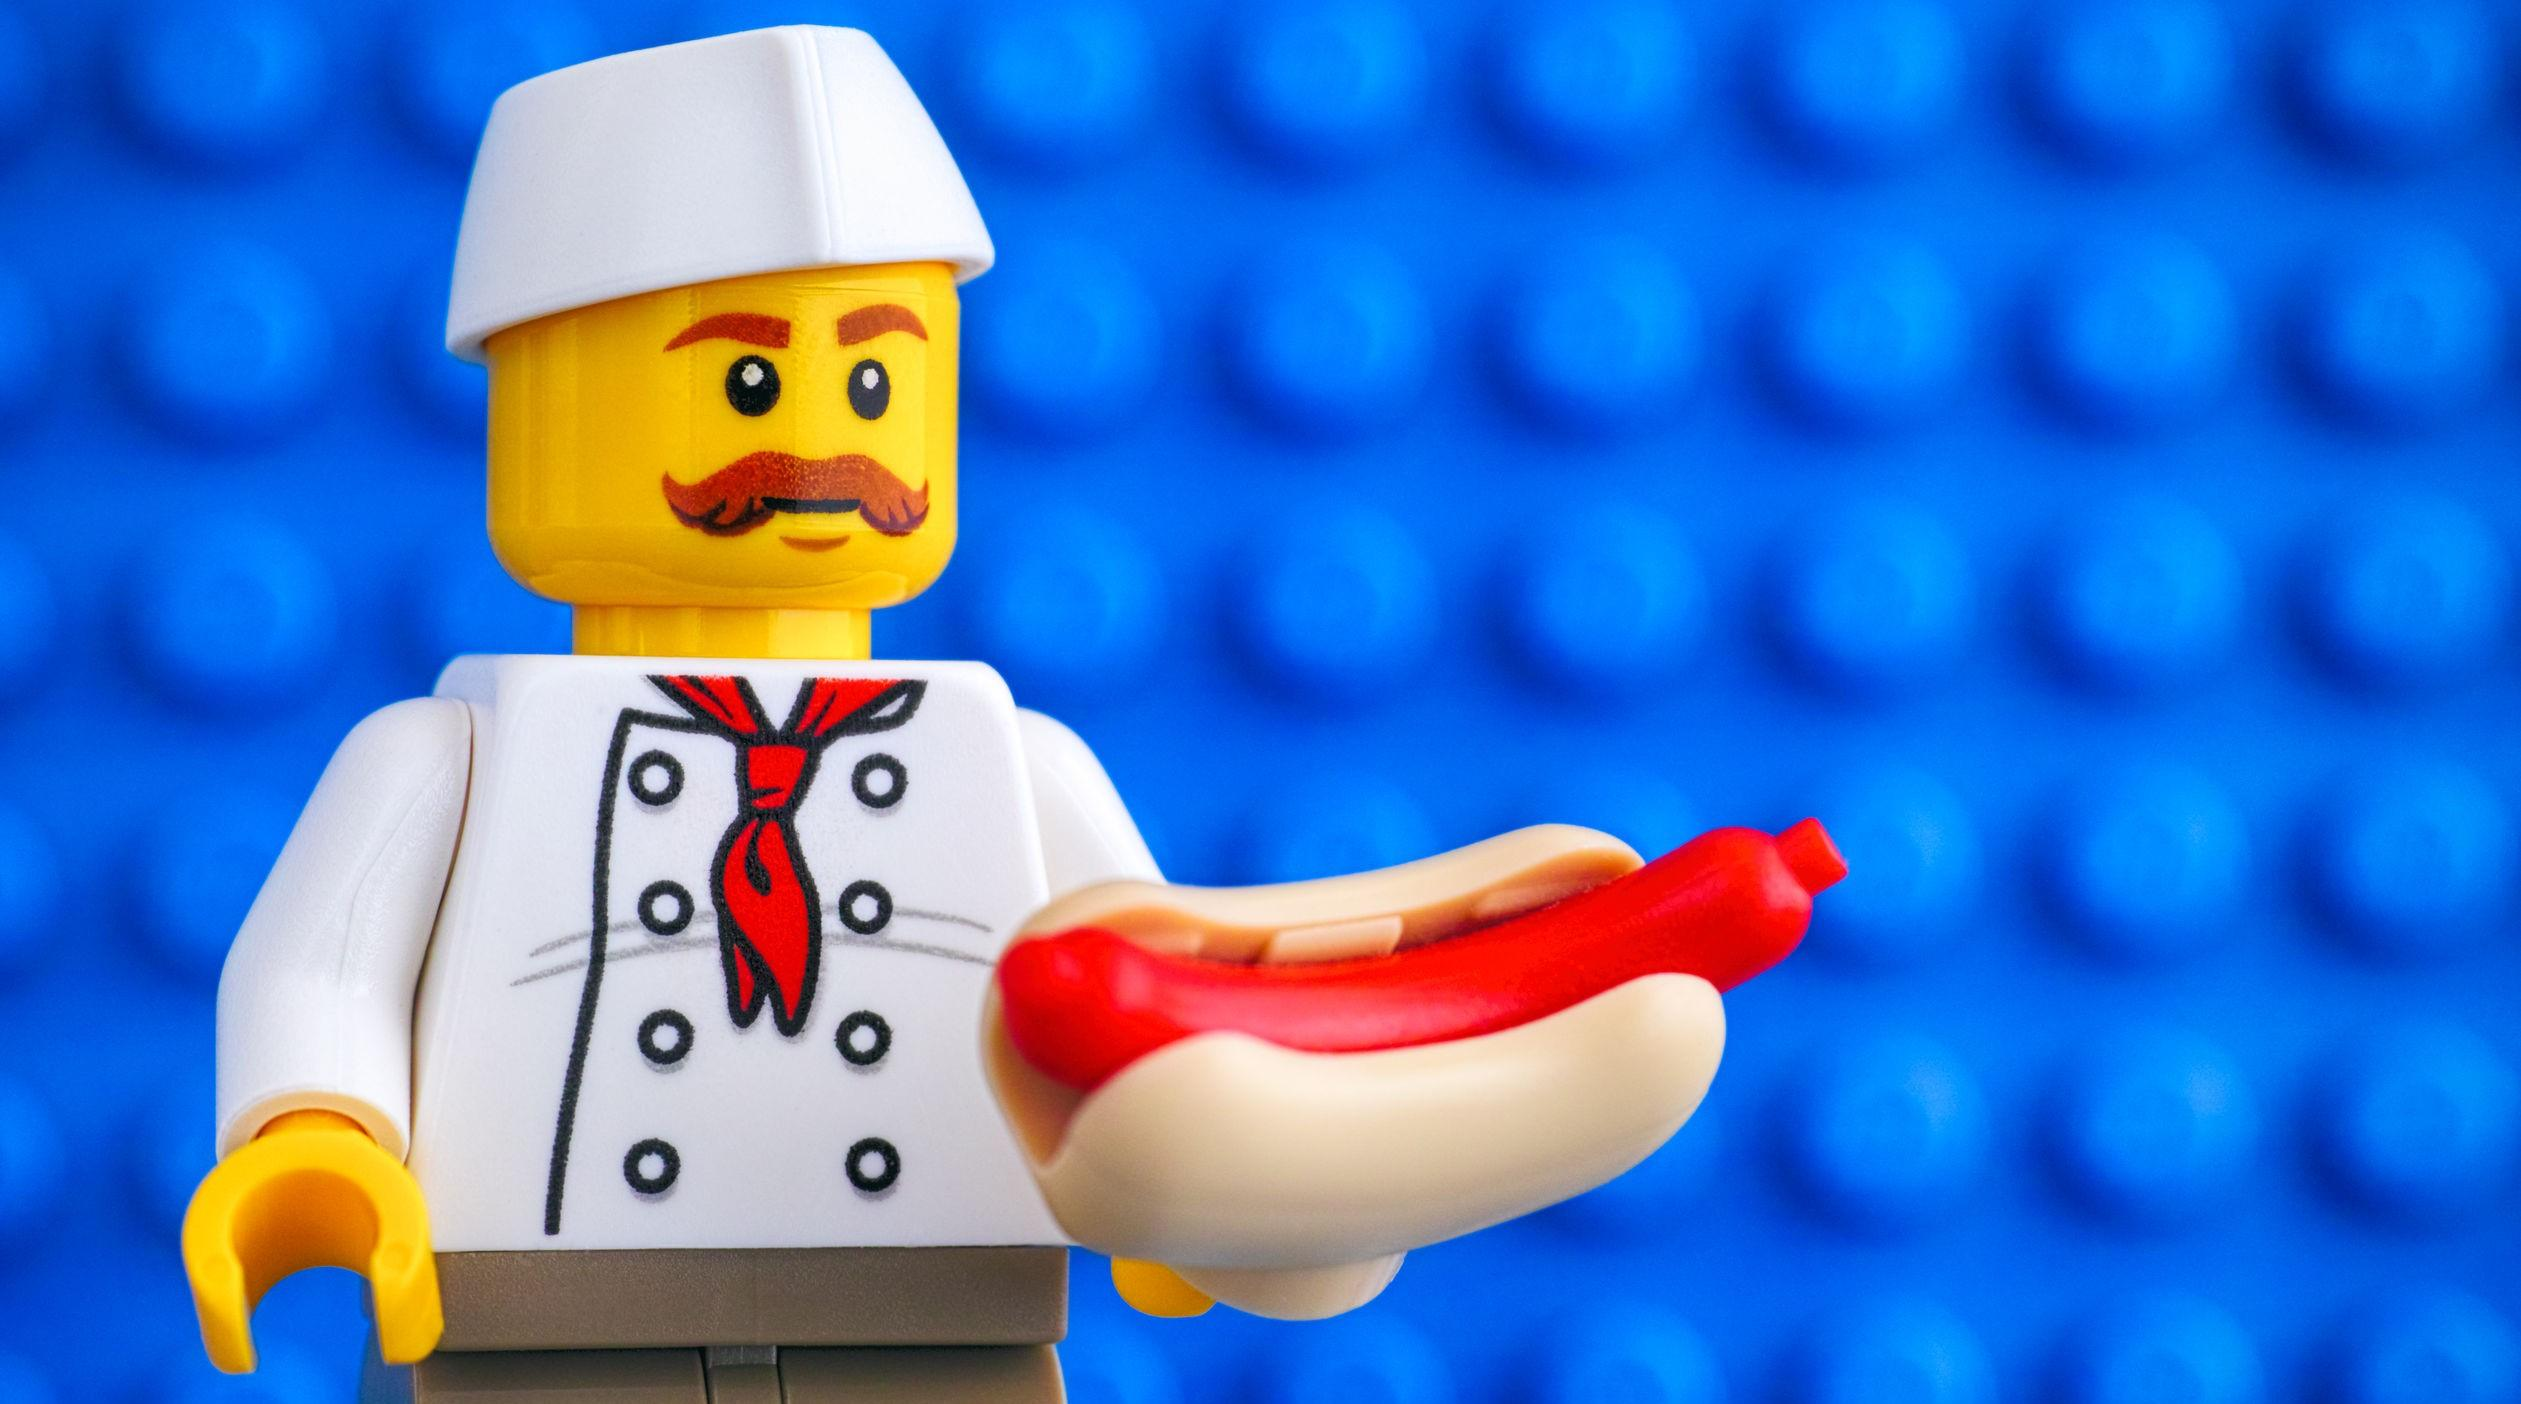 Lego chef with hot dog against blue baseplate backgrounds.